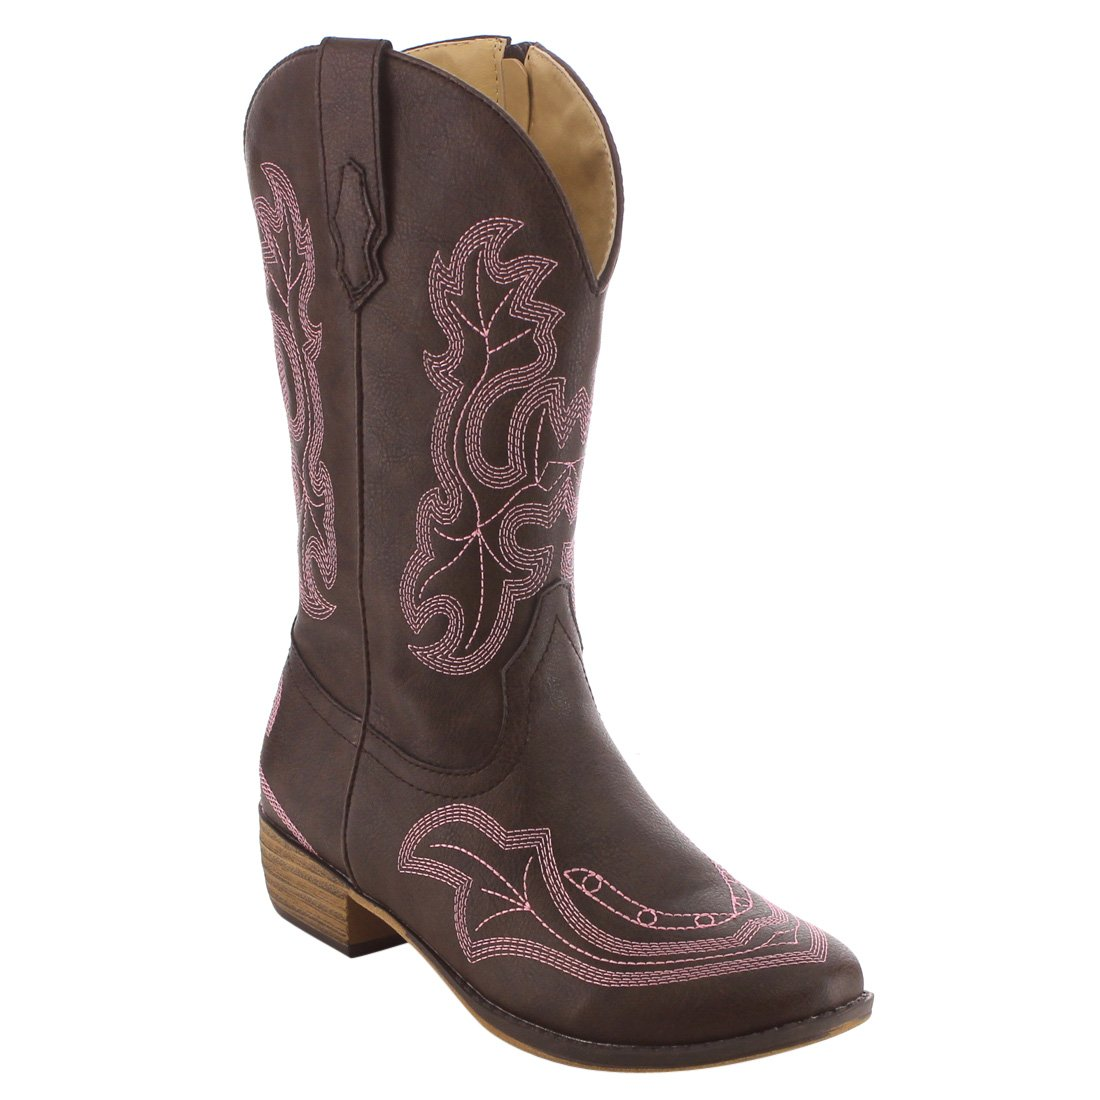 BETANI Ebony Girl's Kids Western Embroidered Mid Calf Cowgirl Block Heel Boots,Brown 05,1